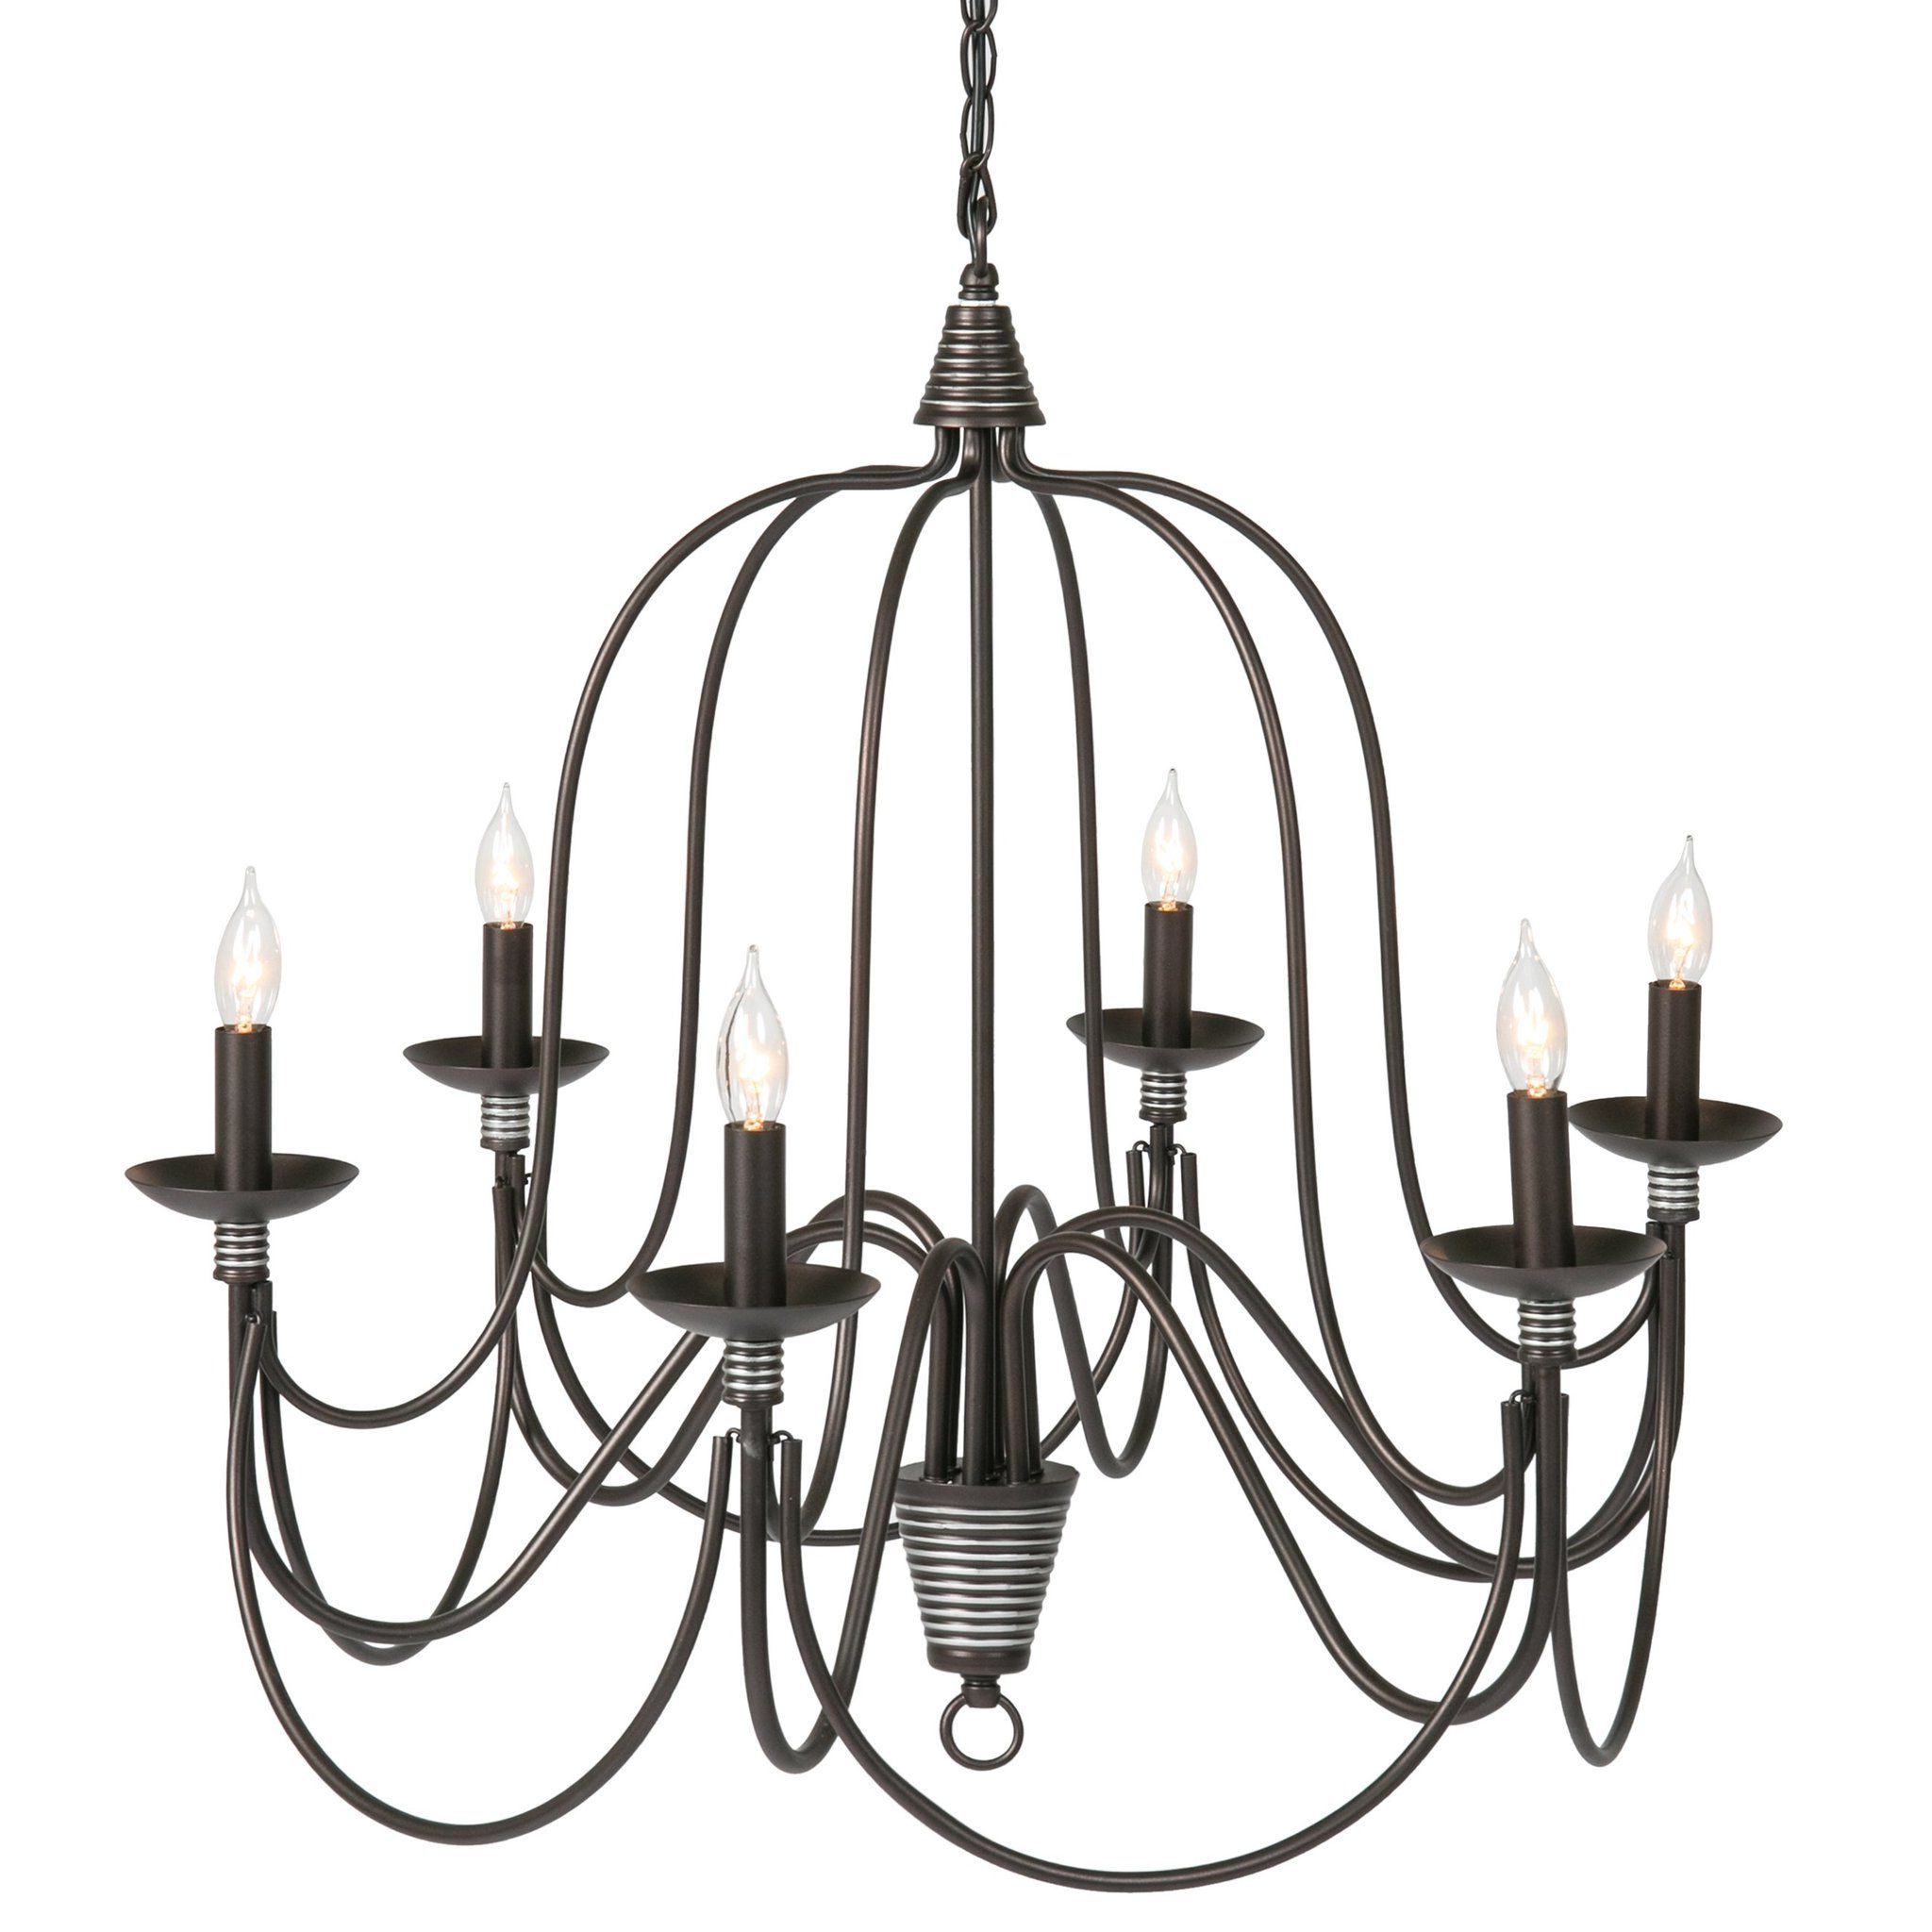 25In 6 Light Candle Chandelier Lighting Fixture W/ 41In Intended For 2019 Camilla 9 Light Candle Style Chandeliers (View 2 of 25)